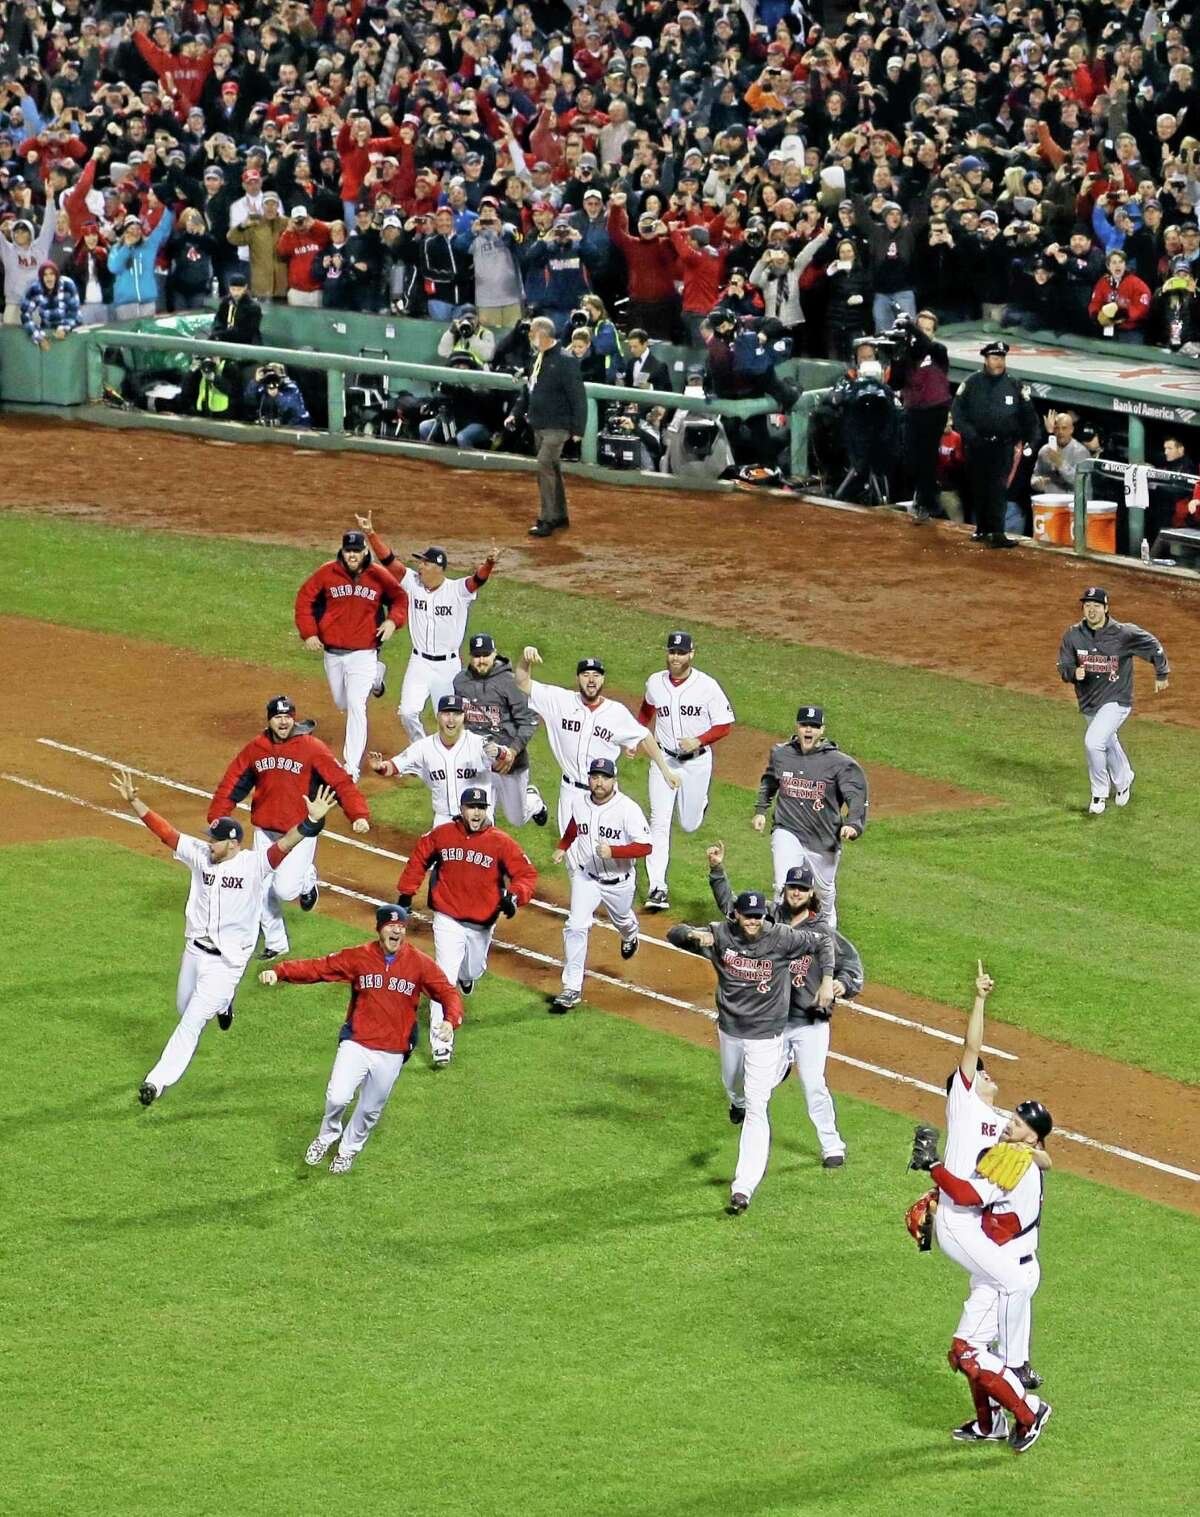 Boston Red Sox relief pitcher Koji Uehara jumps into David Ross's arms after striking out St. Louis Cardinals second baseman Matt Carpenter (13) in Game 6 of baseball's World Series Wednesday, Oct. 30, 2013, in Boston. The Red Sox won 6-1 to win the series. (AP Photo/Matt Slocum)